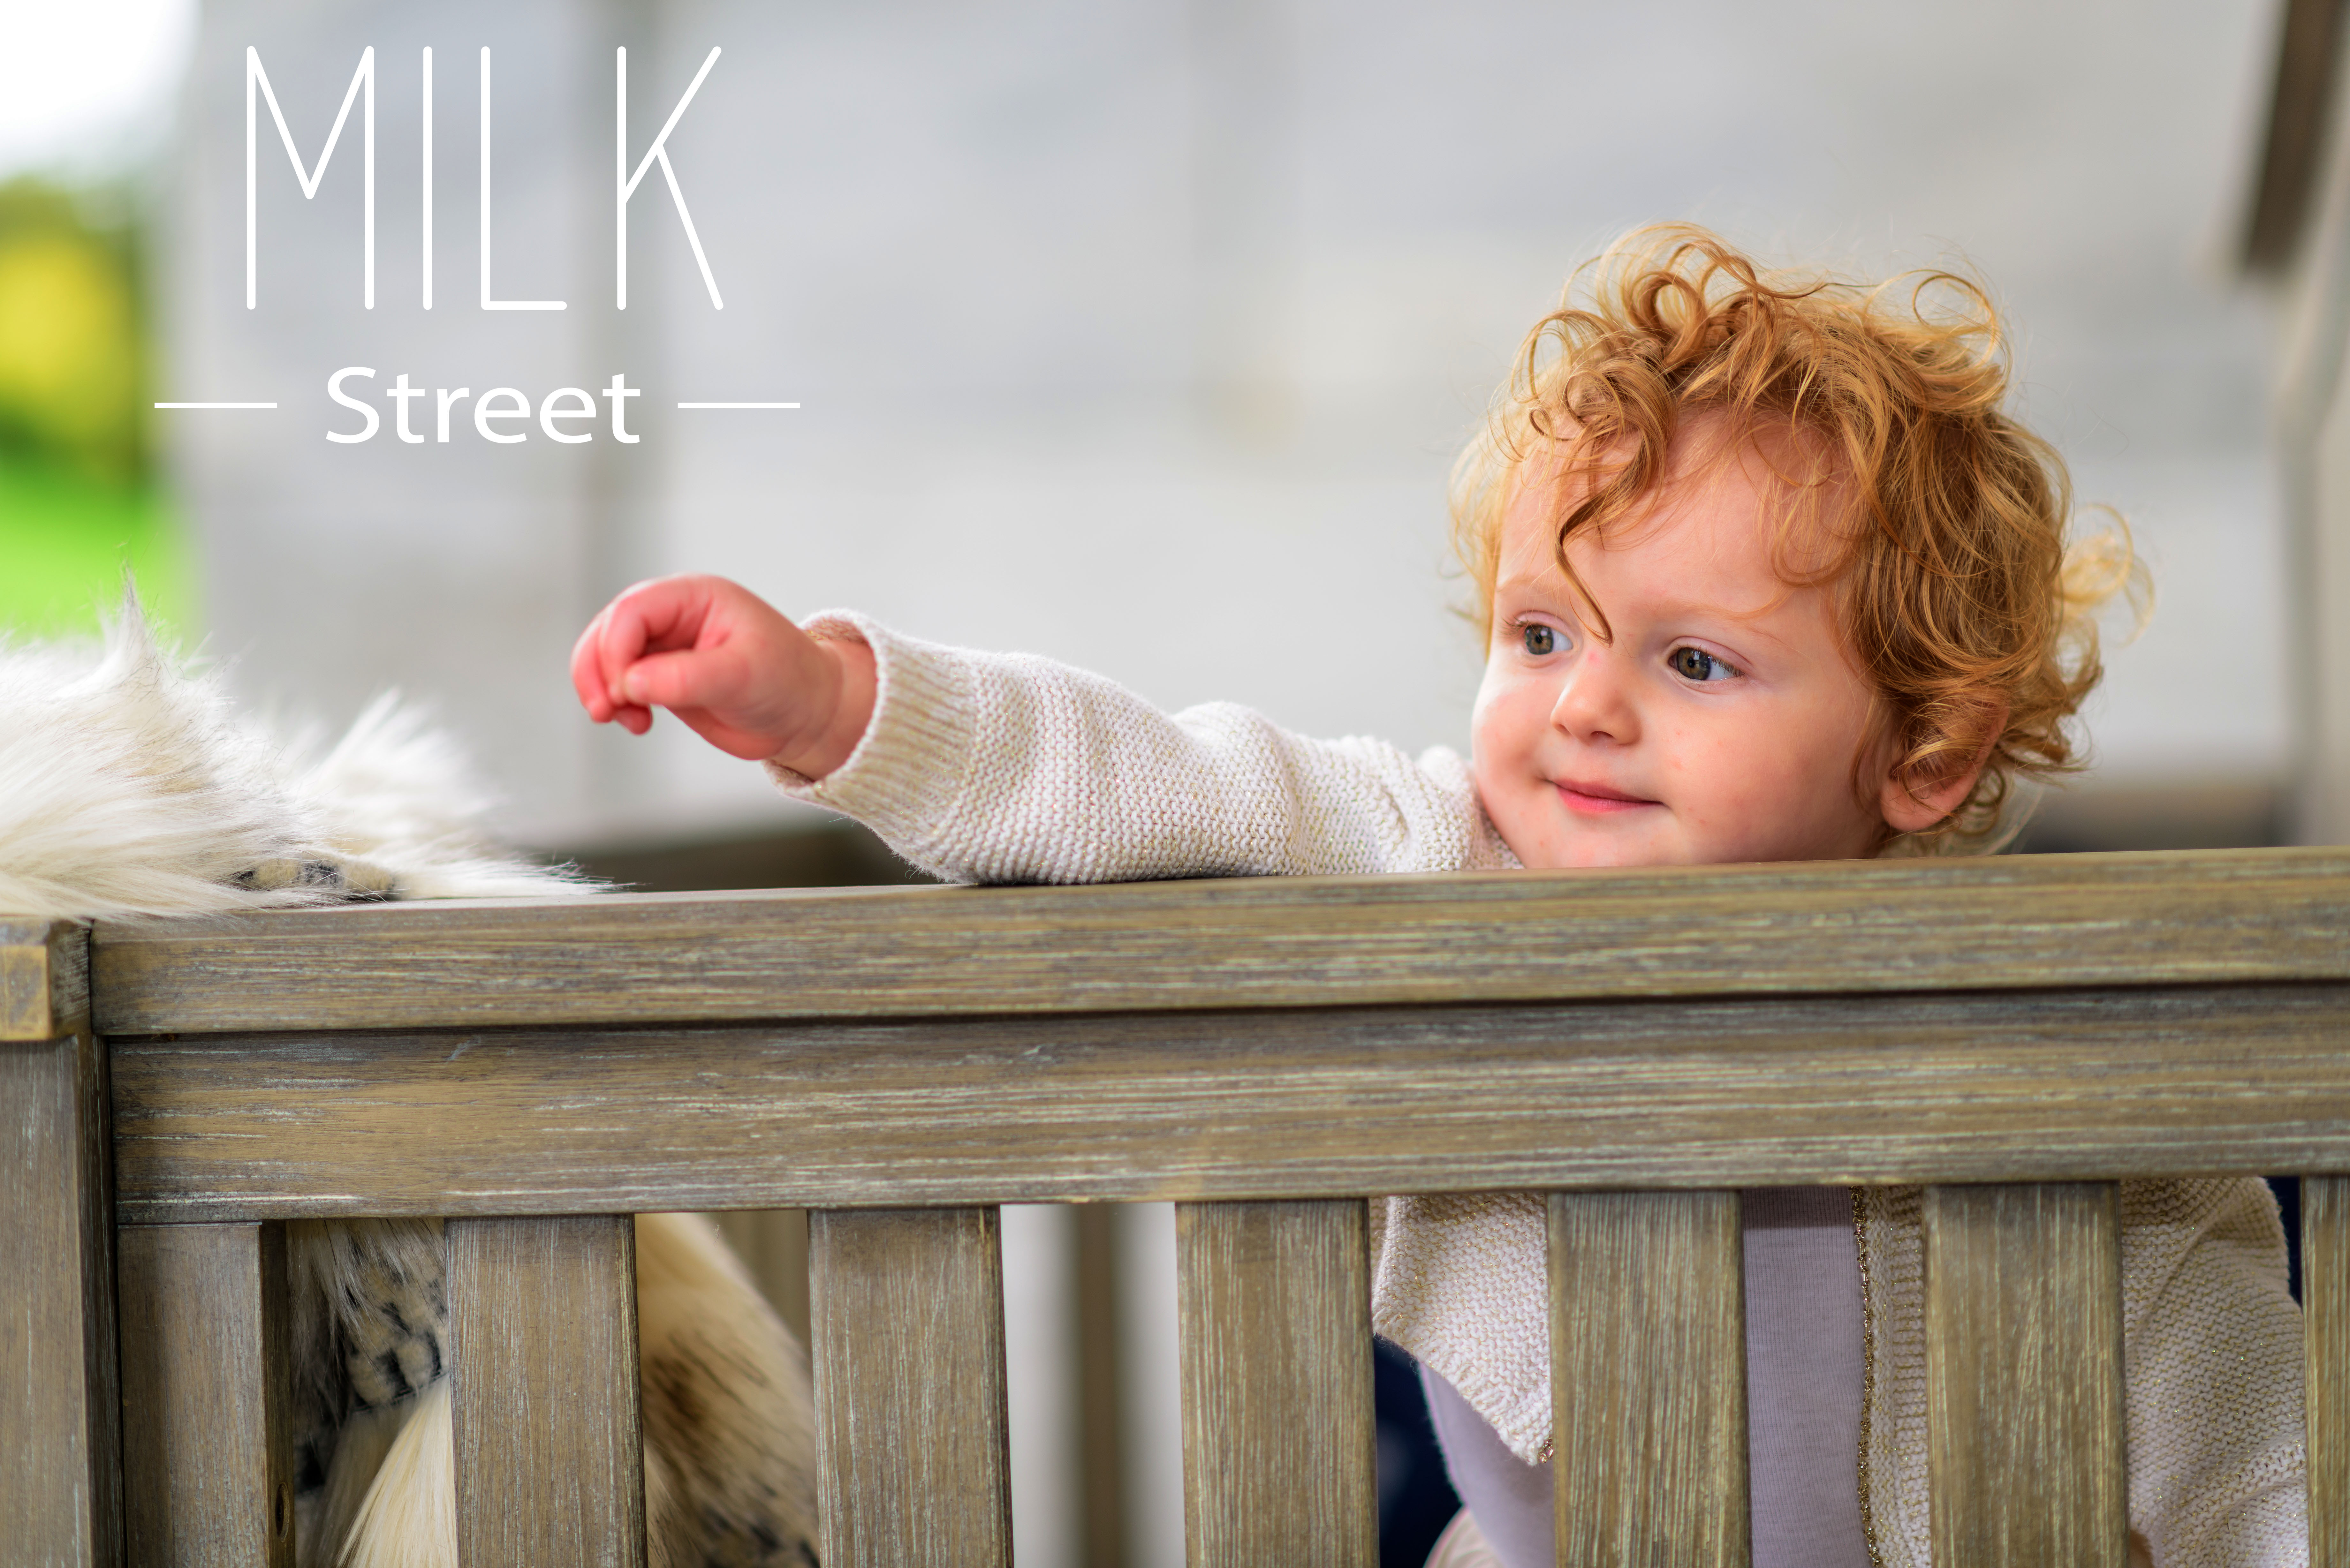 MILK STREET BABY! Finishes that beg to be touched.